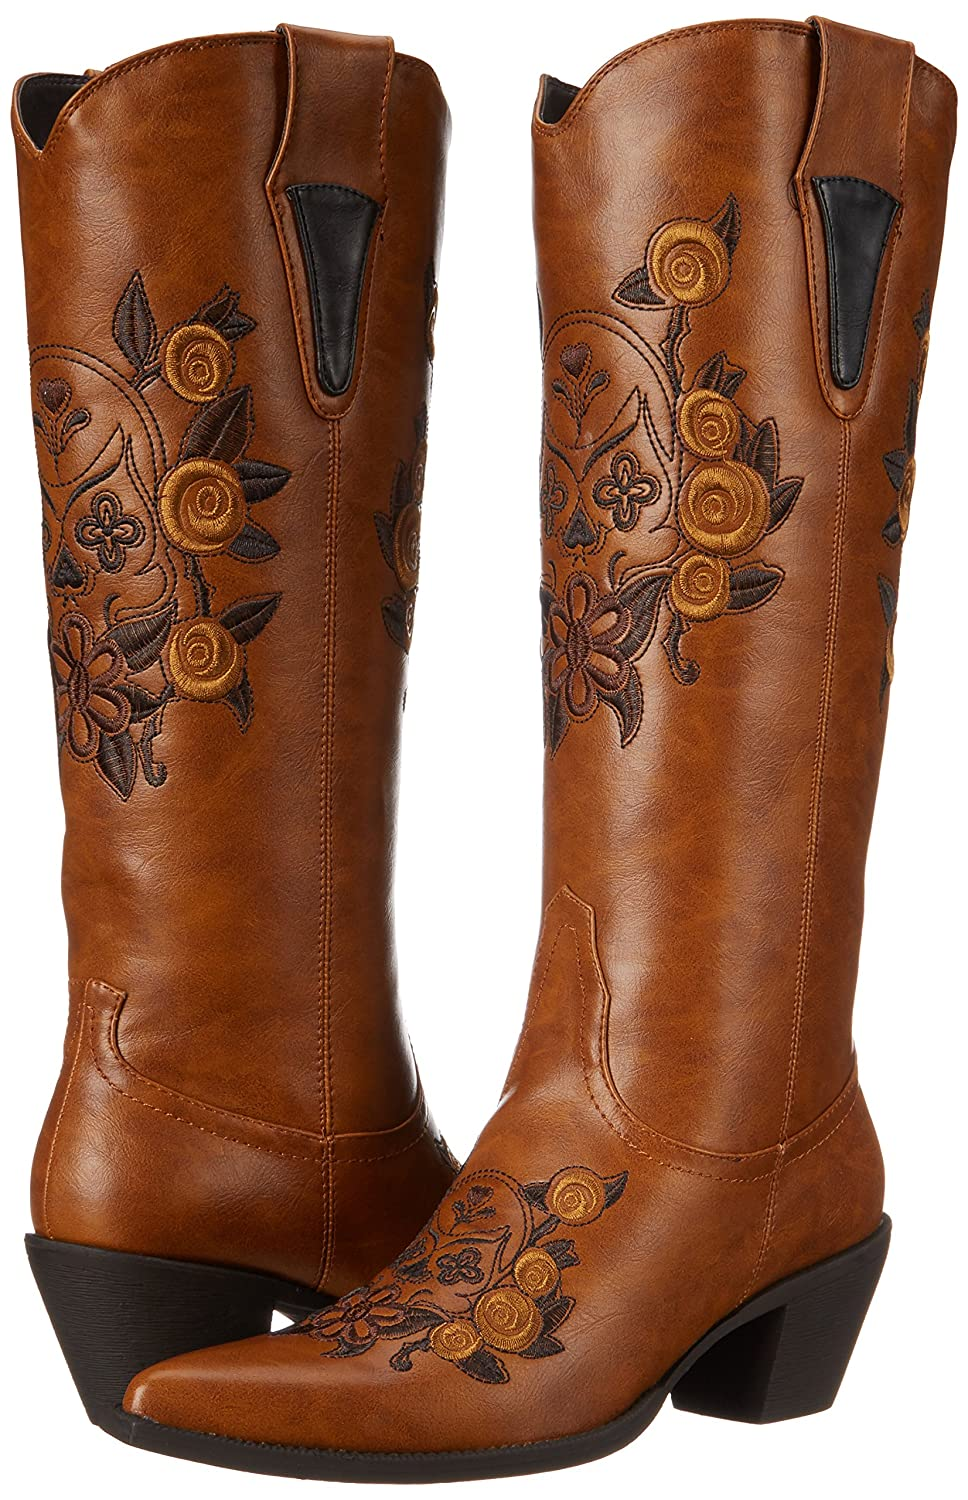 Roper Women's Dawn Western Knee-High Boot Tan B0044QYFX4 5.5 B(M) US|Floral/Skull Tan Boot 062161